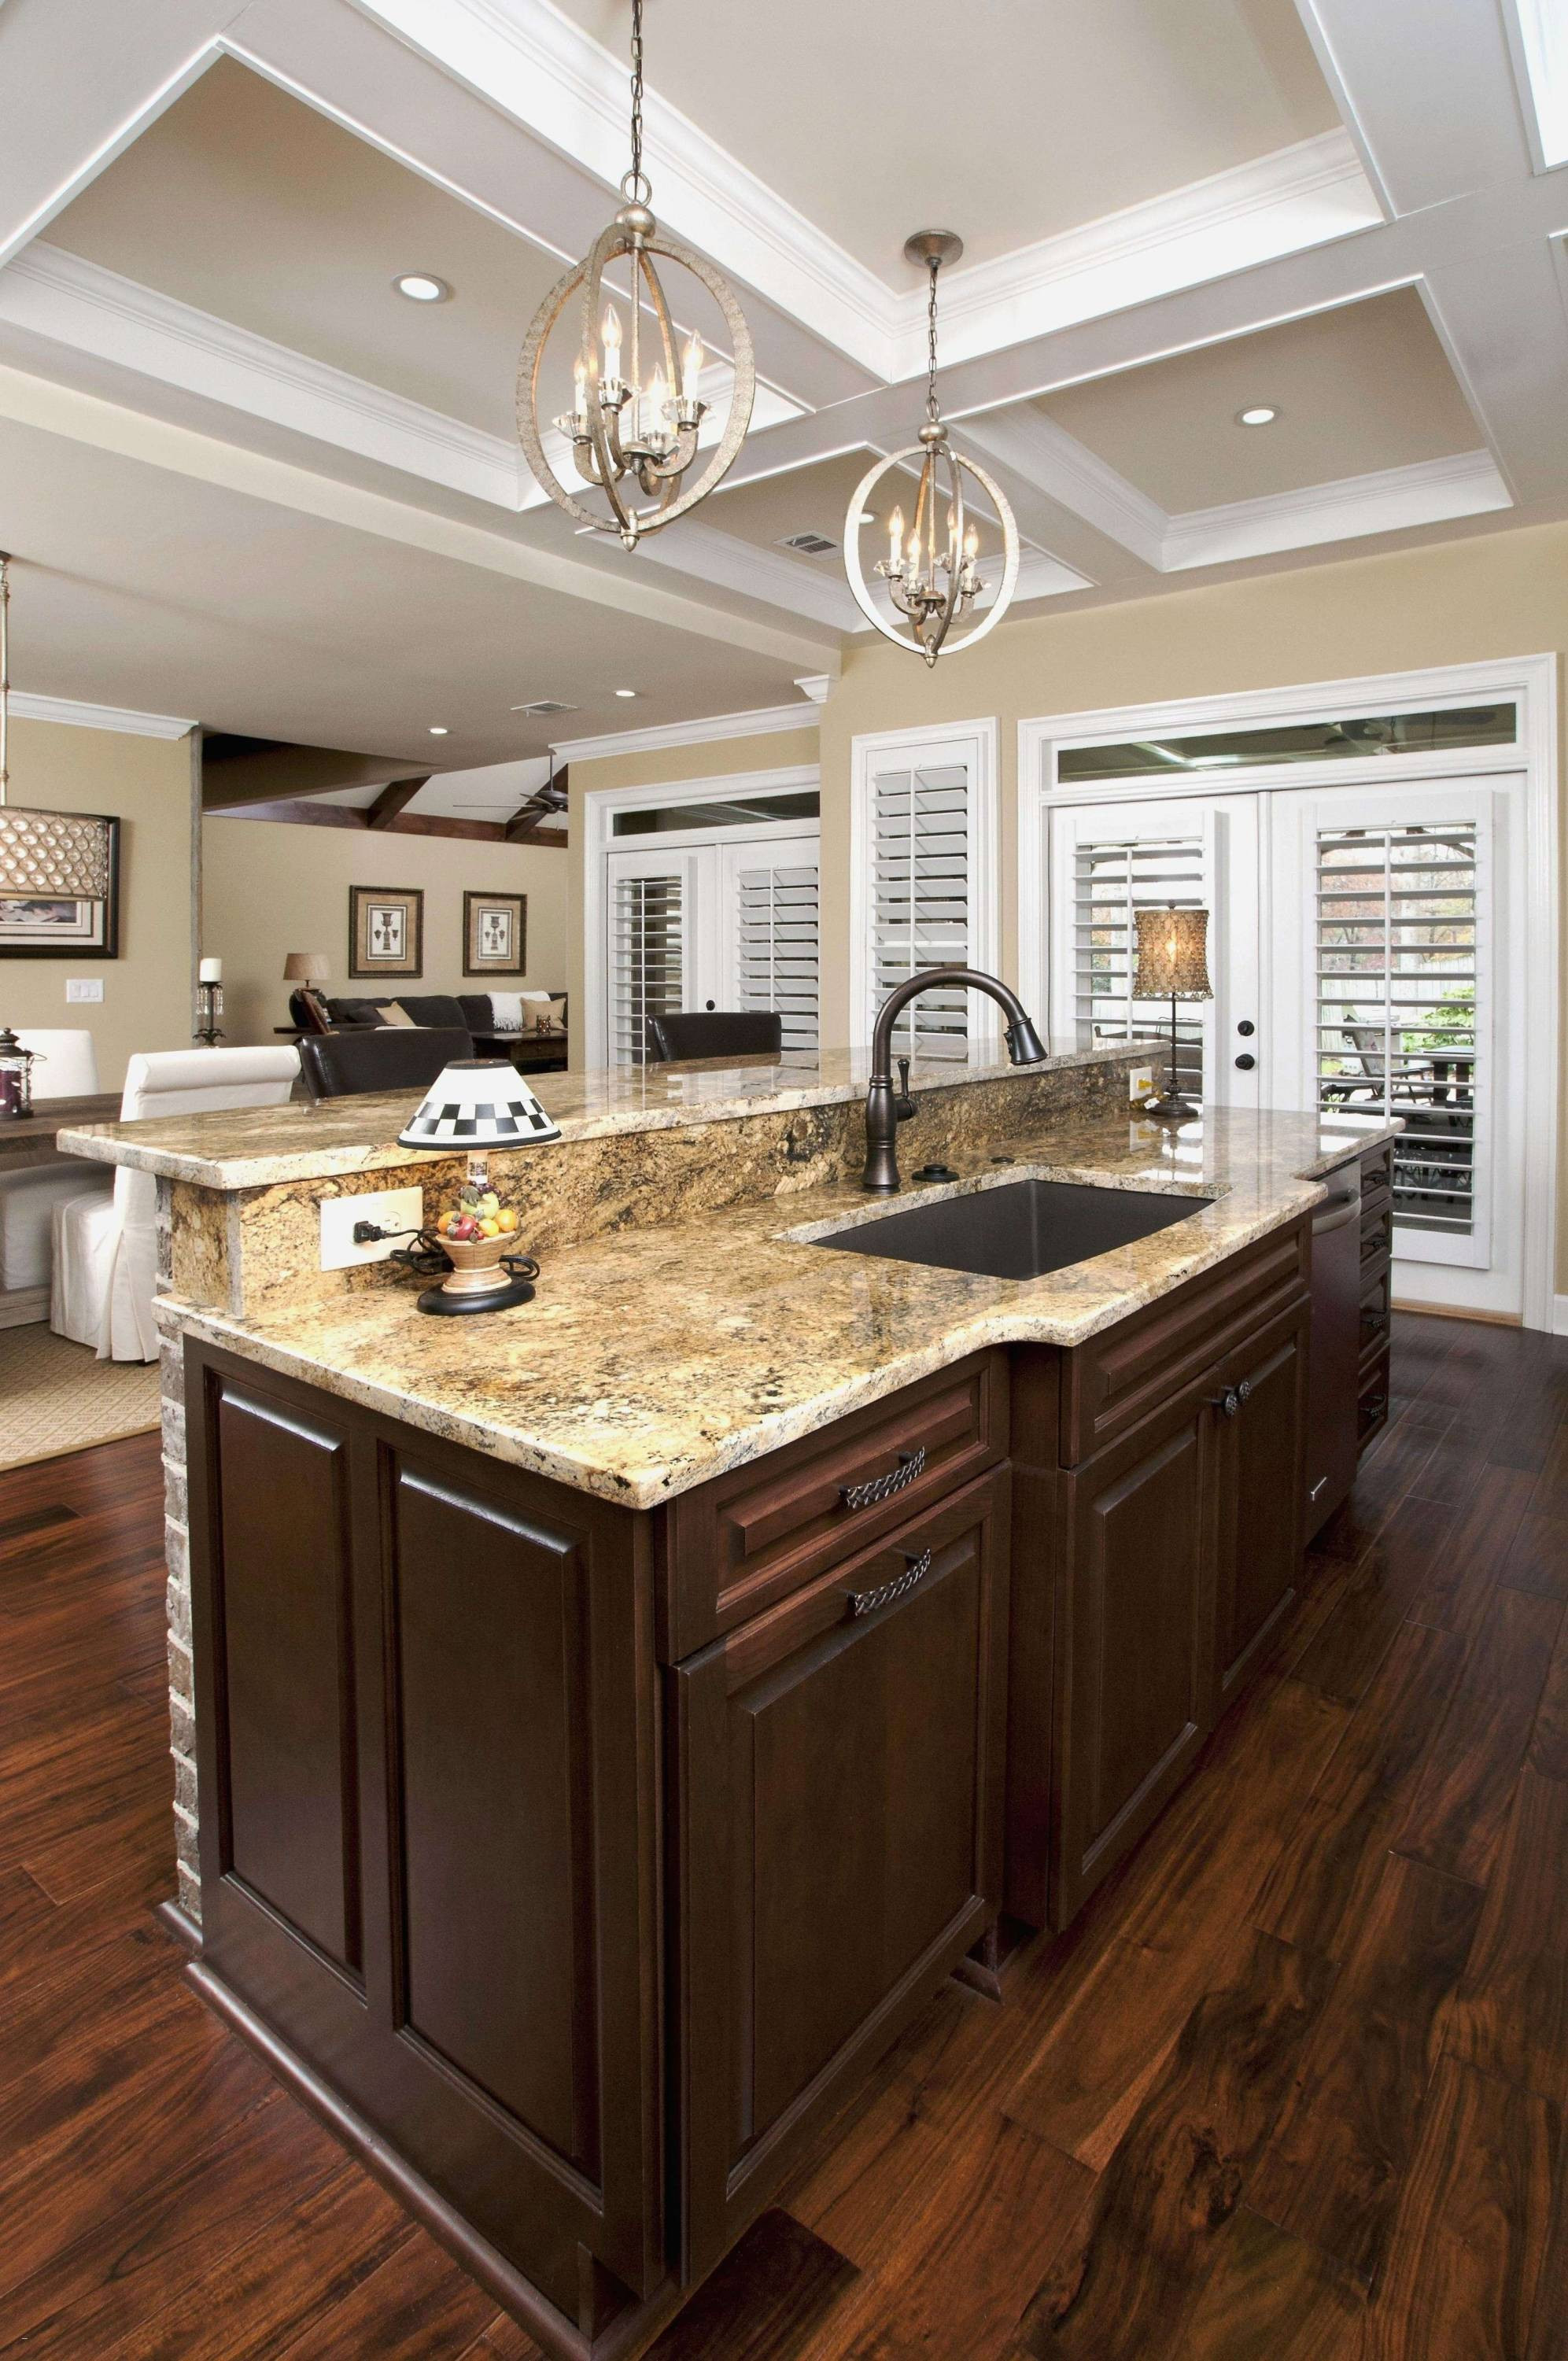 how to install hardwood floors in kitchen of 10 inspirational kitchen cabinets installation tools www with regard to kitchen cabinet layout tool elegant kitchen planner awesome kitchen planner 0d of kitchen cabinet layout tool